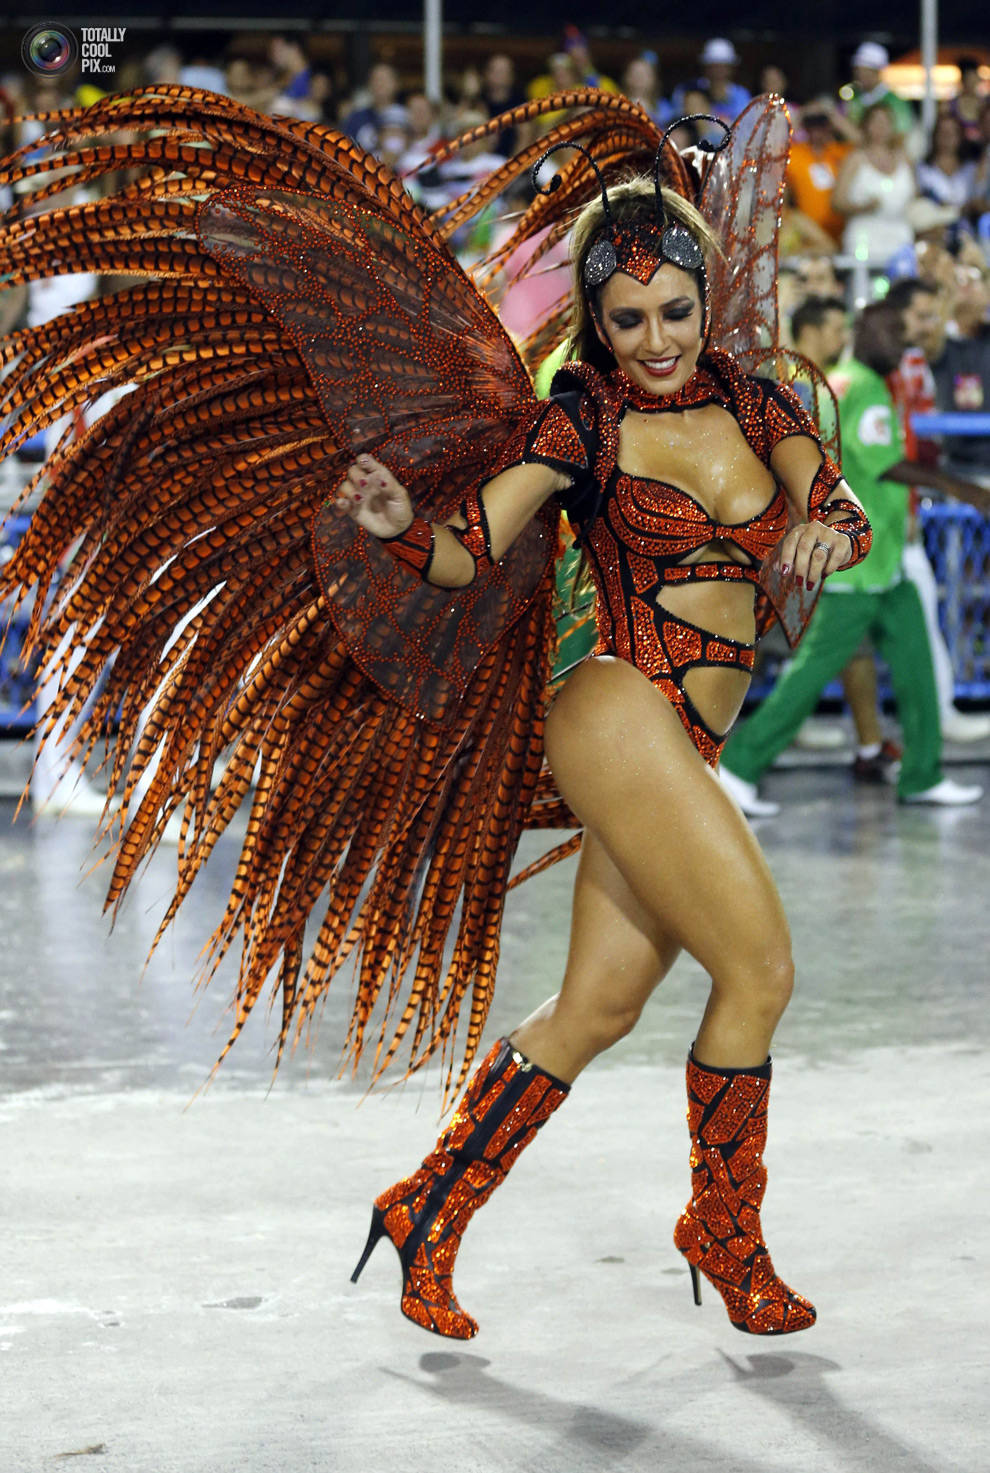 carnival-rio-2014-20  sc 1 st  Lost in Internet & Rio Carnival 2014: 35 of the Hottest Photos of Brazilian Samba ...